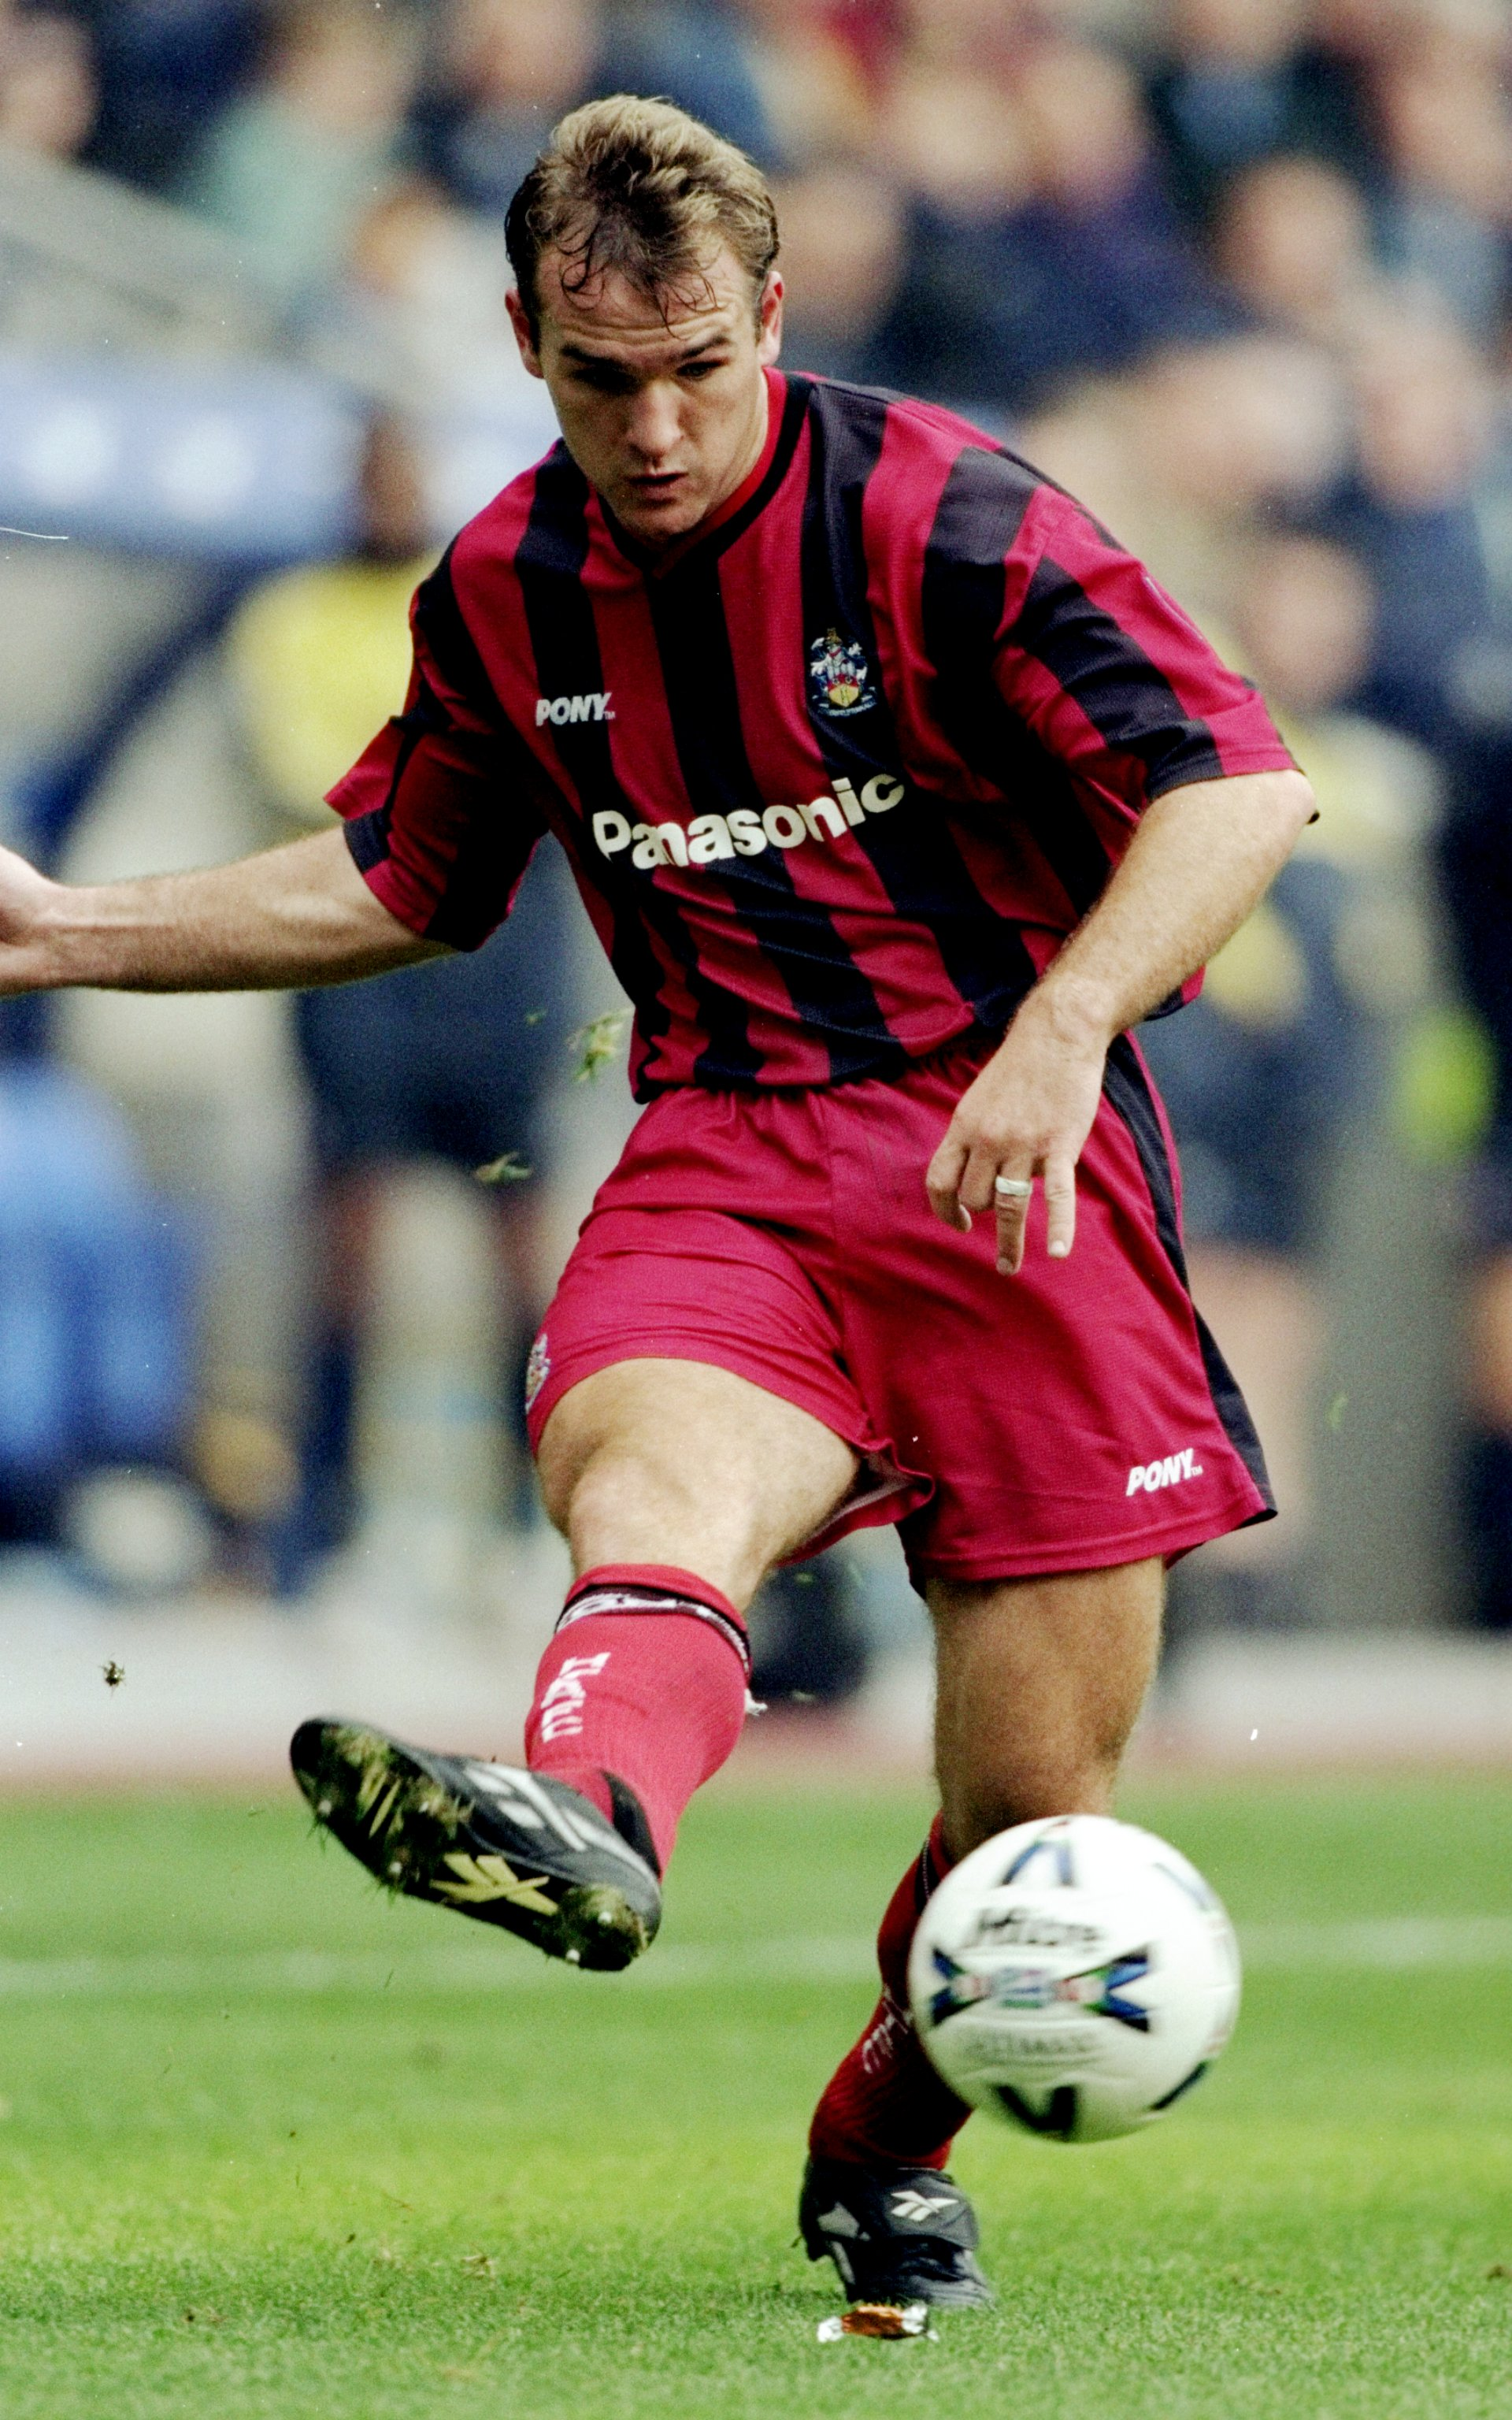 26 Sep 1998:  Kevin Gray of Huddersfield Town in action during the Nationwide division one game against Bolton Wanderers at the Reebok Stadium, Bolton, England. Bolton won 3-0. \ Mandatory Credit: Alex Livesey /Allsport